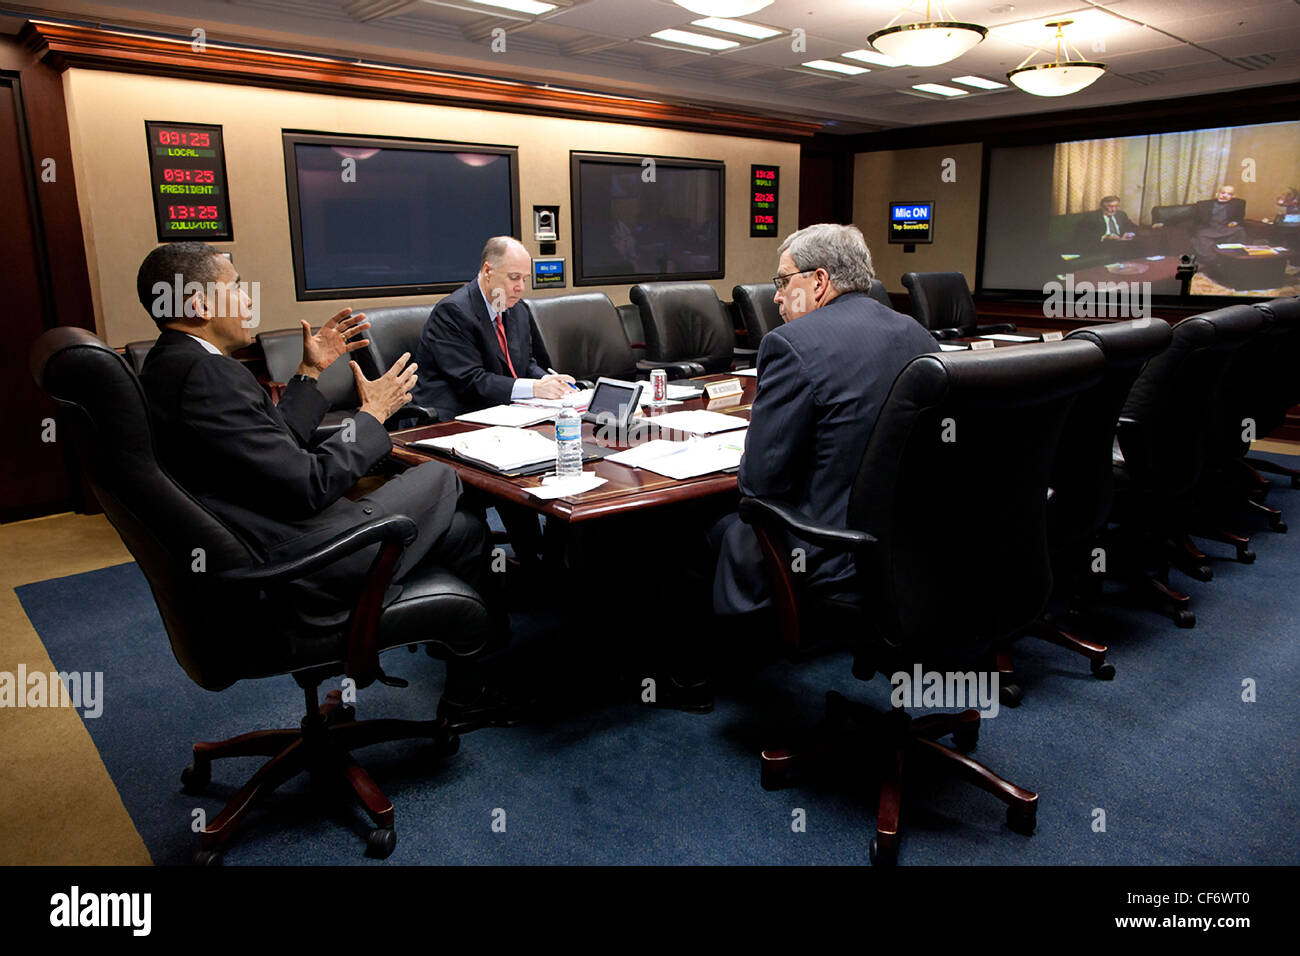 President Barack Obama joined by National Security Advisor Tom Donilon and Lt. Gen. Doug Lute, Special Assistant - Stock Image